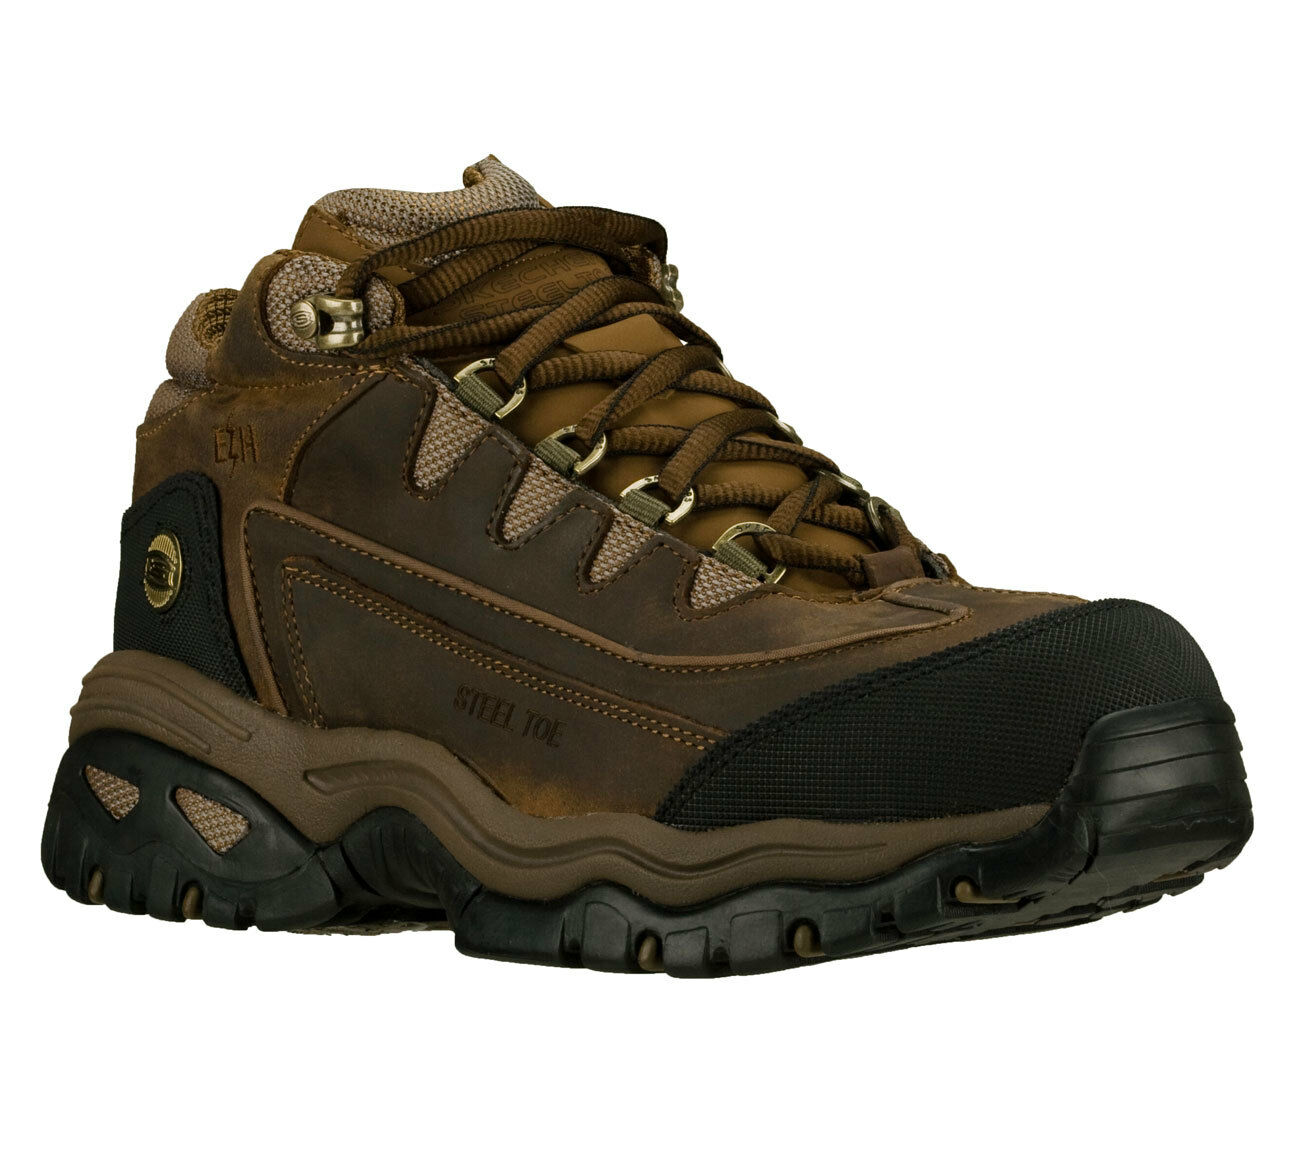 Skechers For Work: ENERGY BLUE RIDGE Men's Steel Toe Ankle Boots BROWN 76068CHA